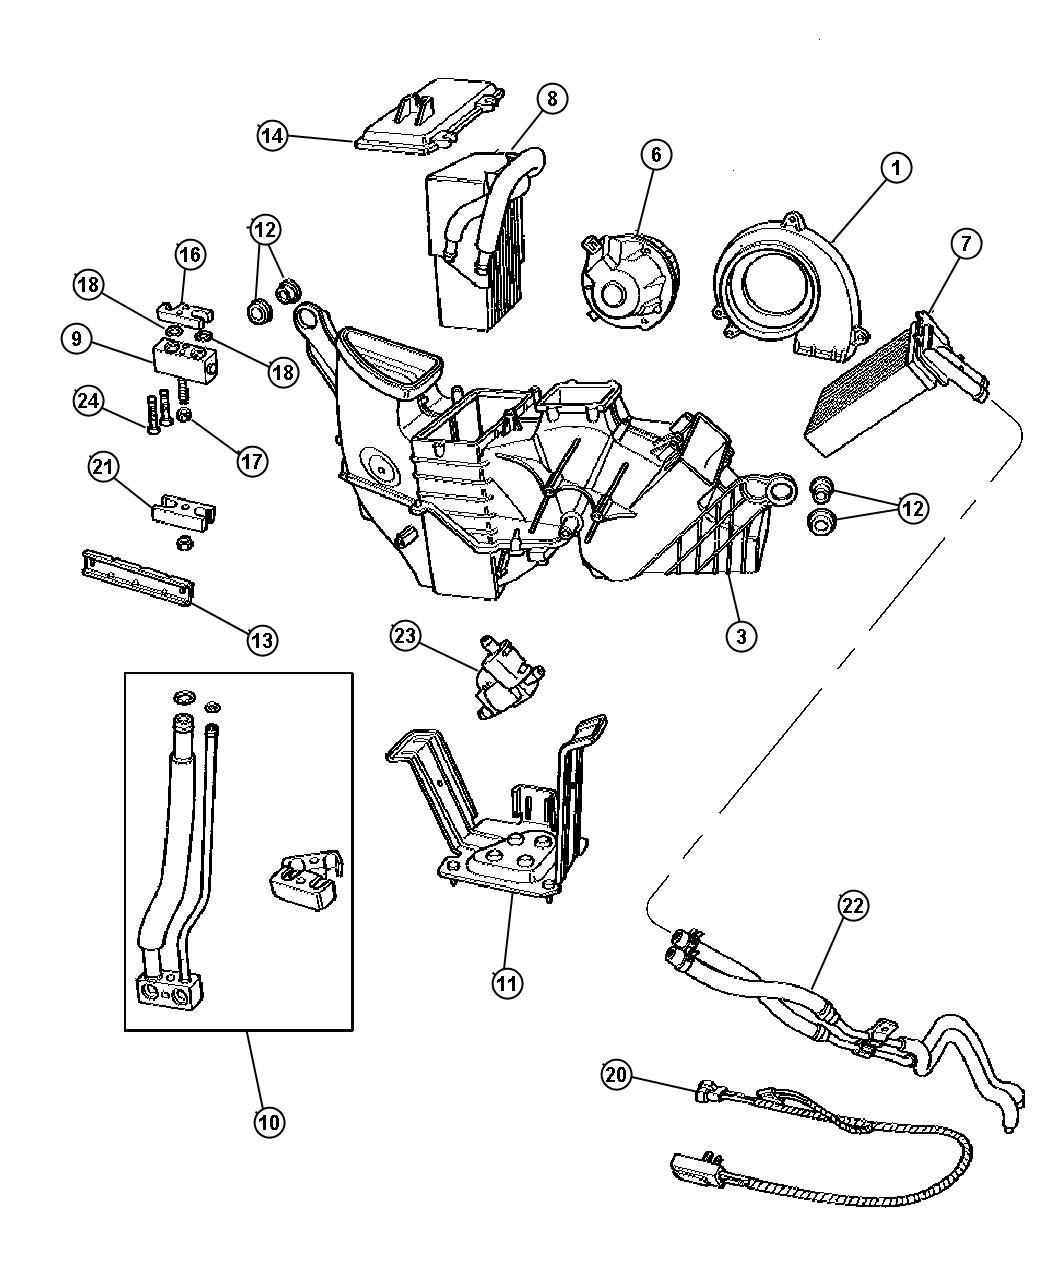 1998 plymouth voyager cooling system diagram